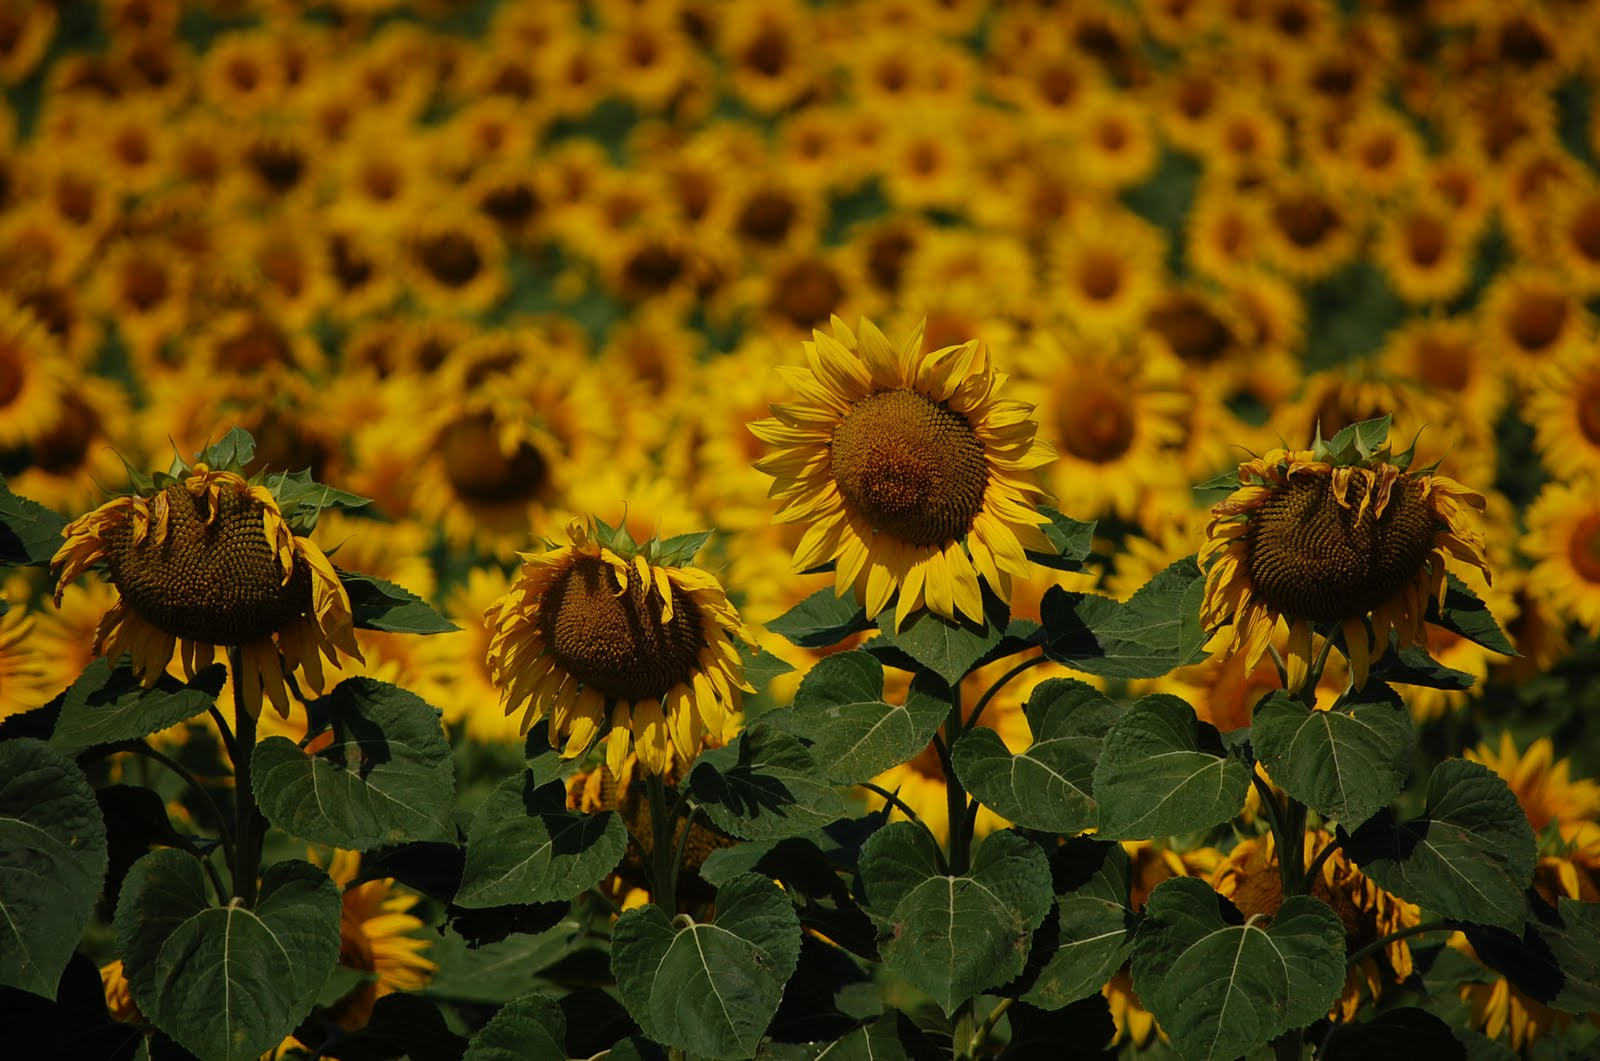 Photograph Sunflowers by Petya Georgieva on 500px